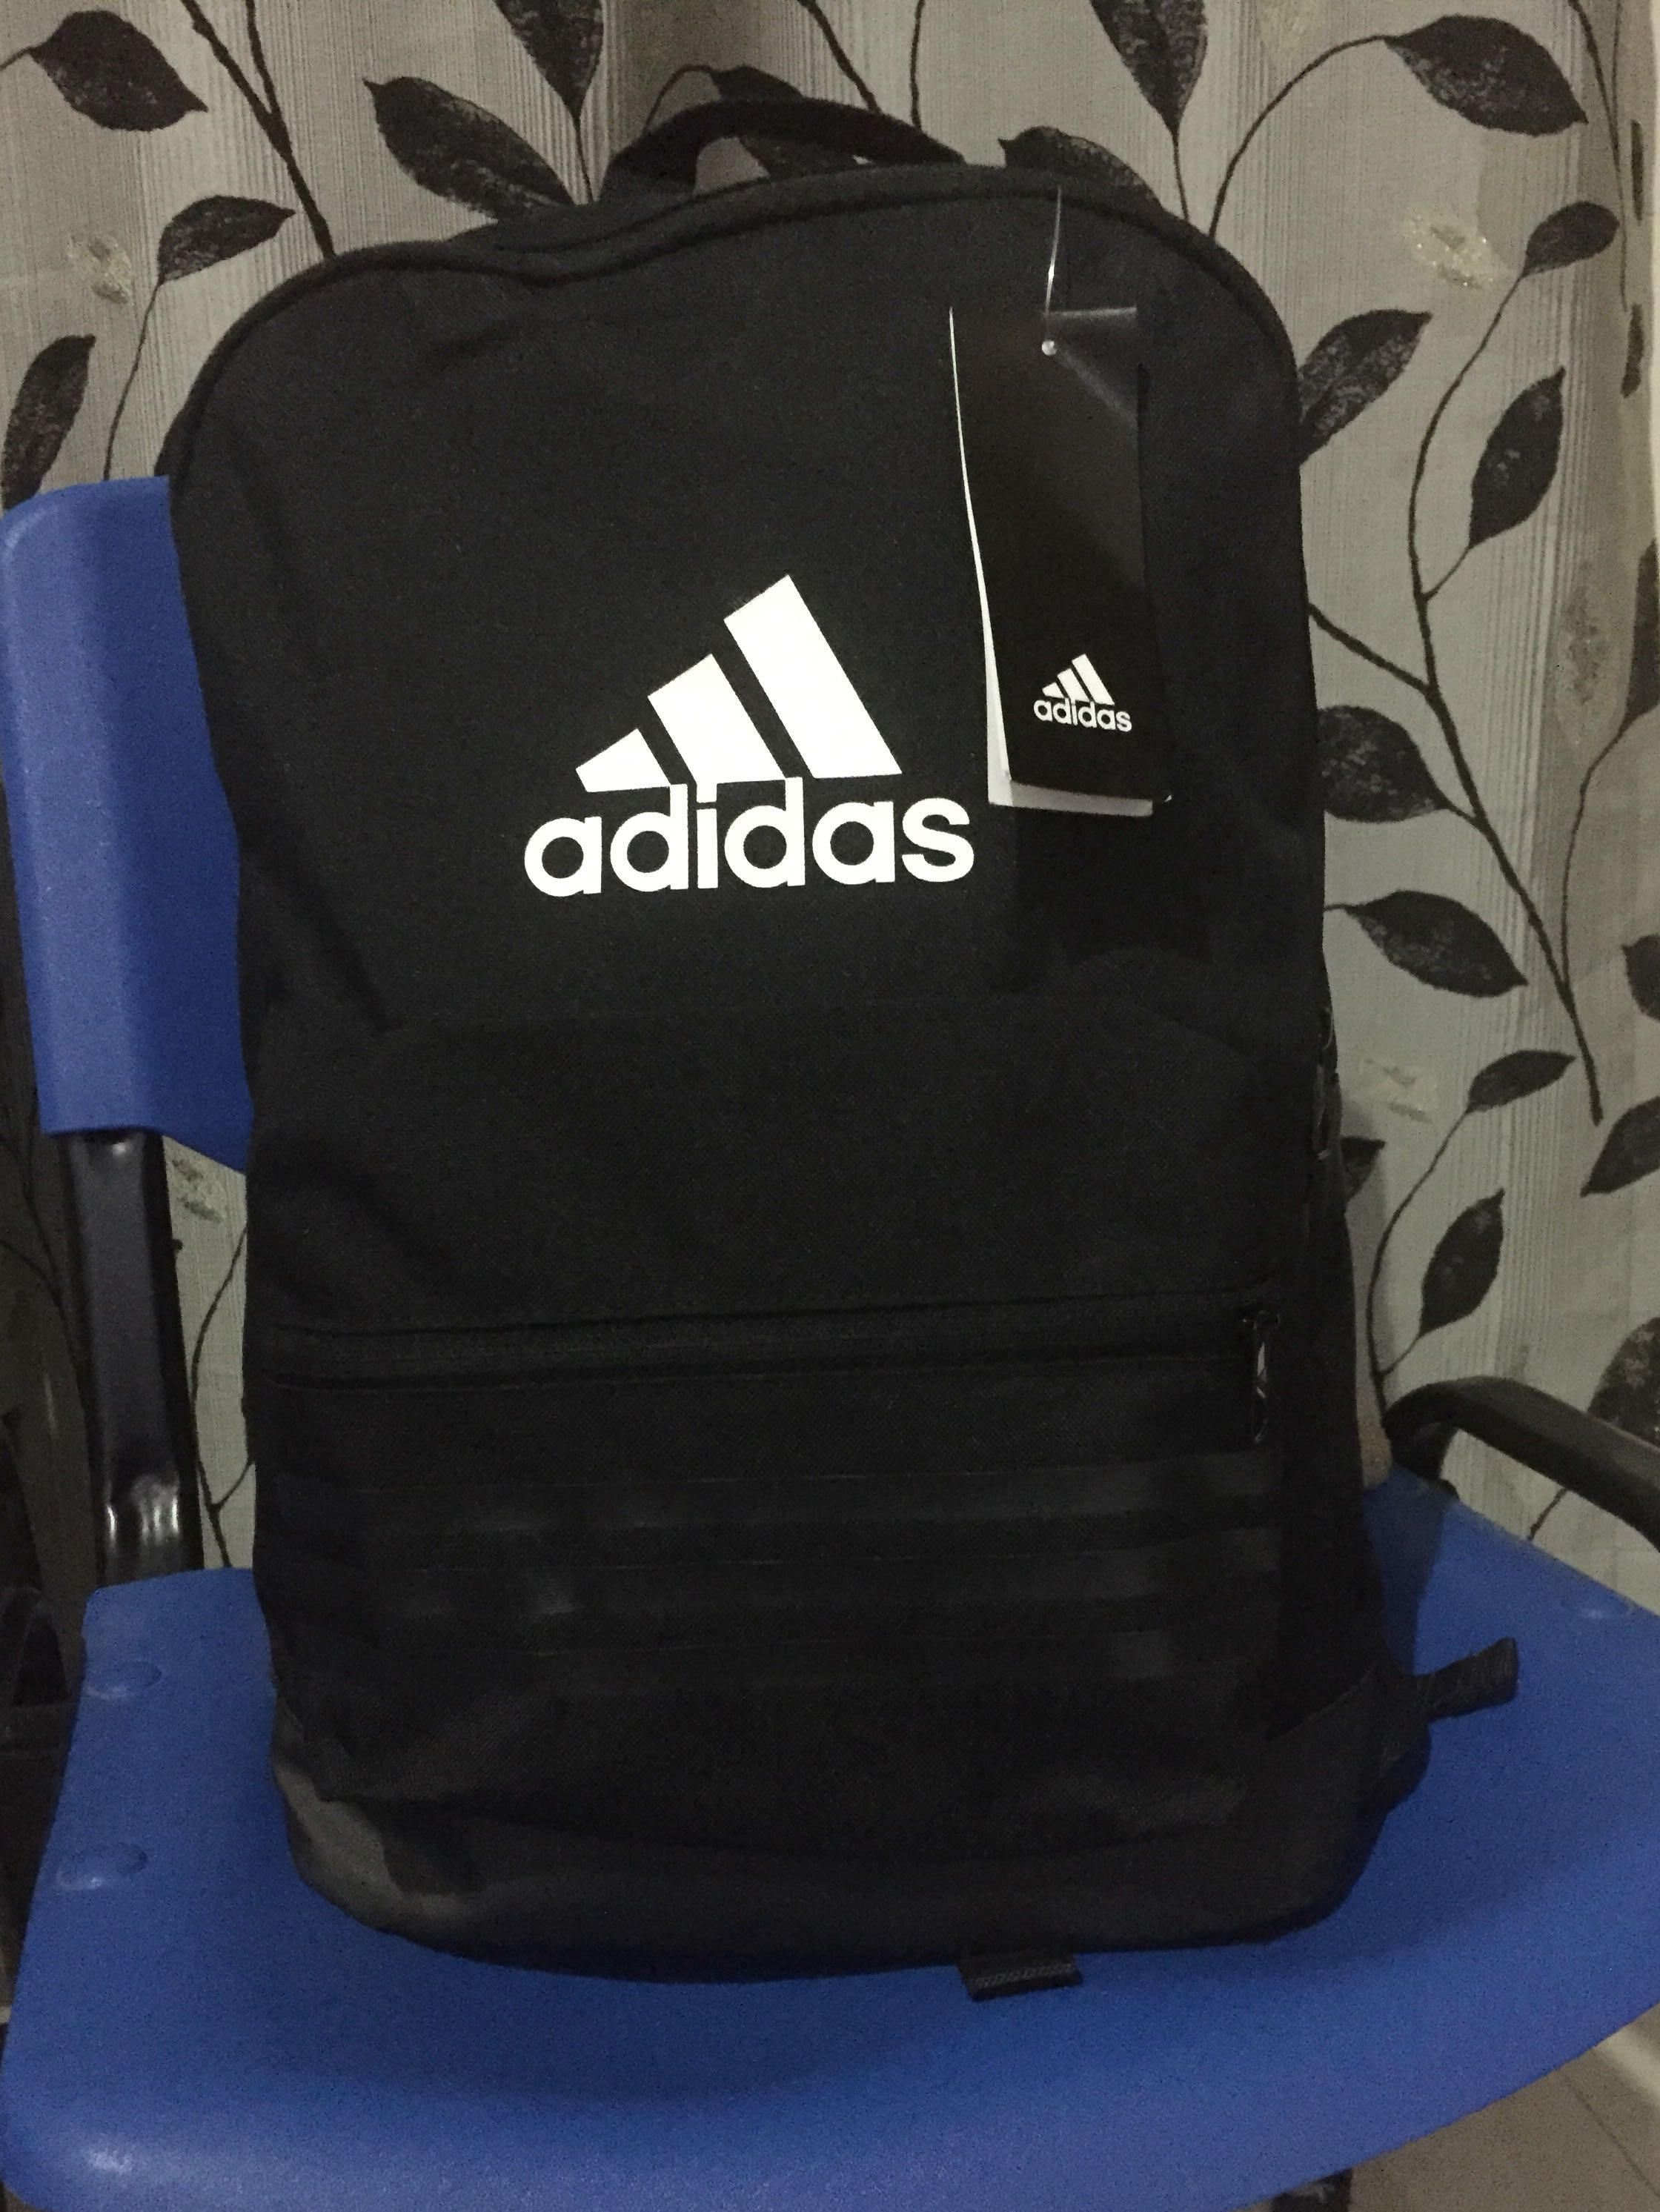 64a156cc041 Adidas 3-stripes Sport Backpack Original, Men's Fashion, Men's Bags ...